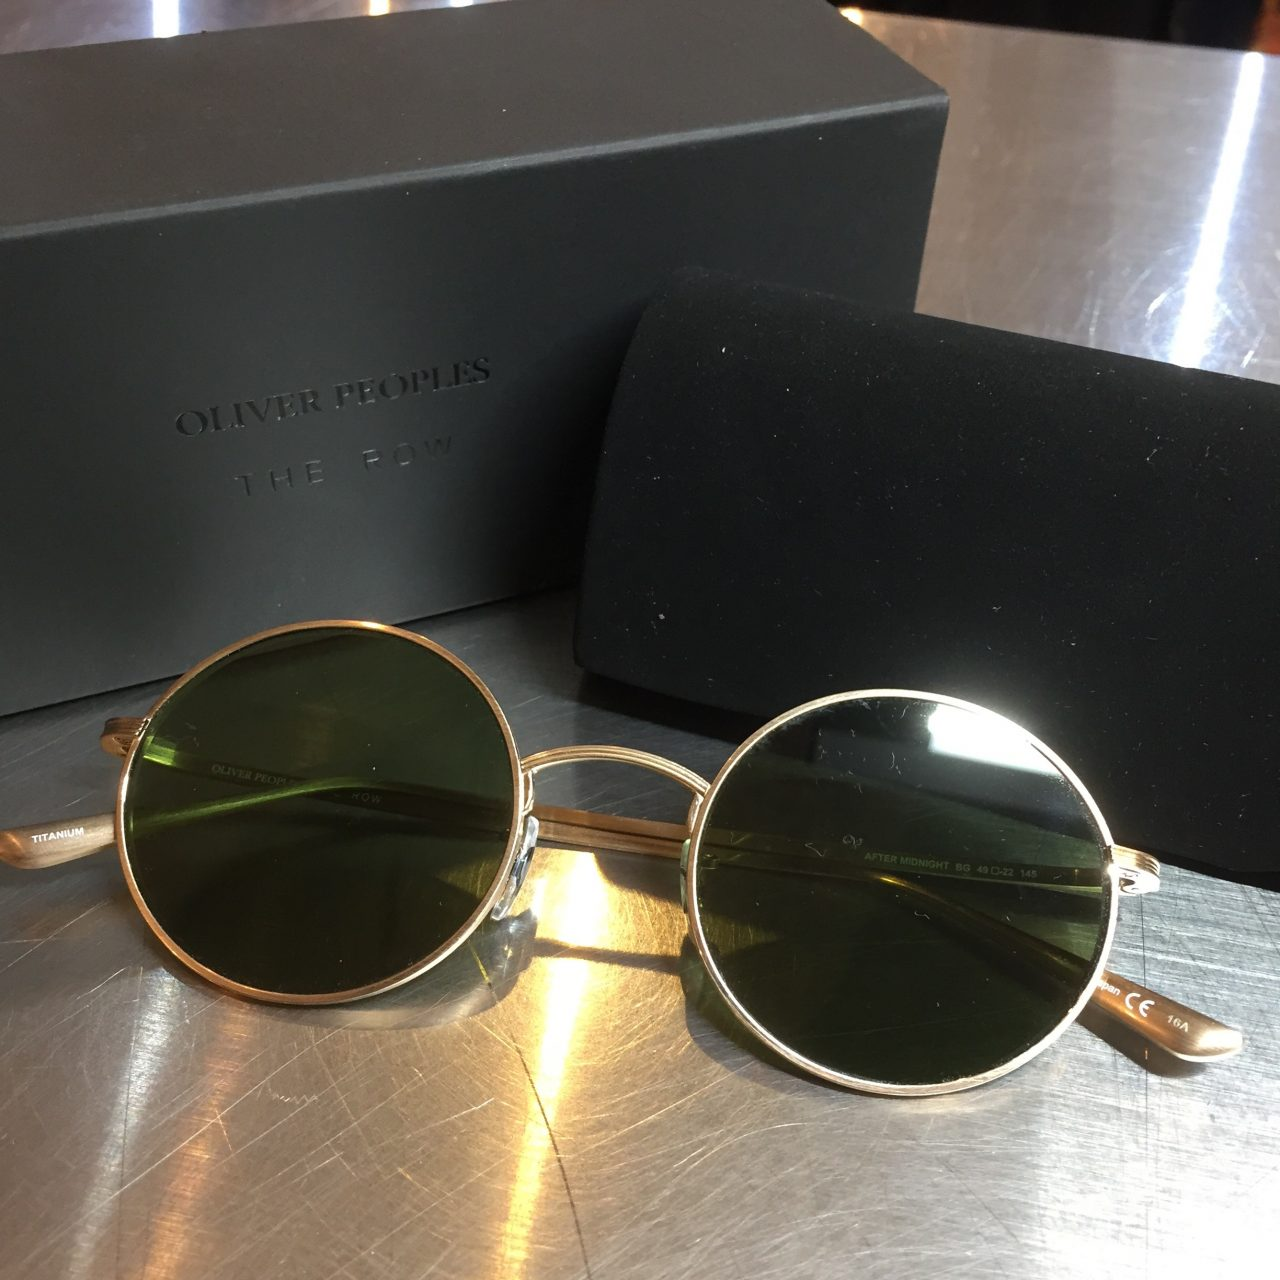 OLIVER PEOPLES x THE ROW AFTER MIDNIGHT